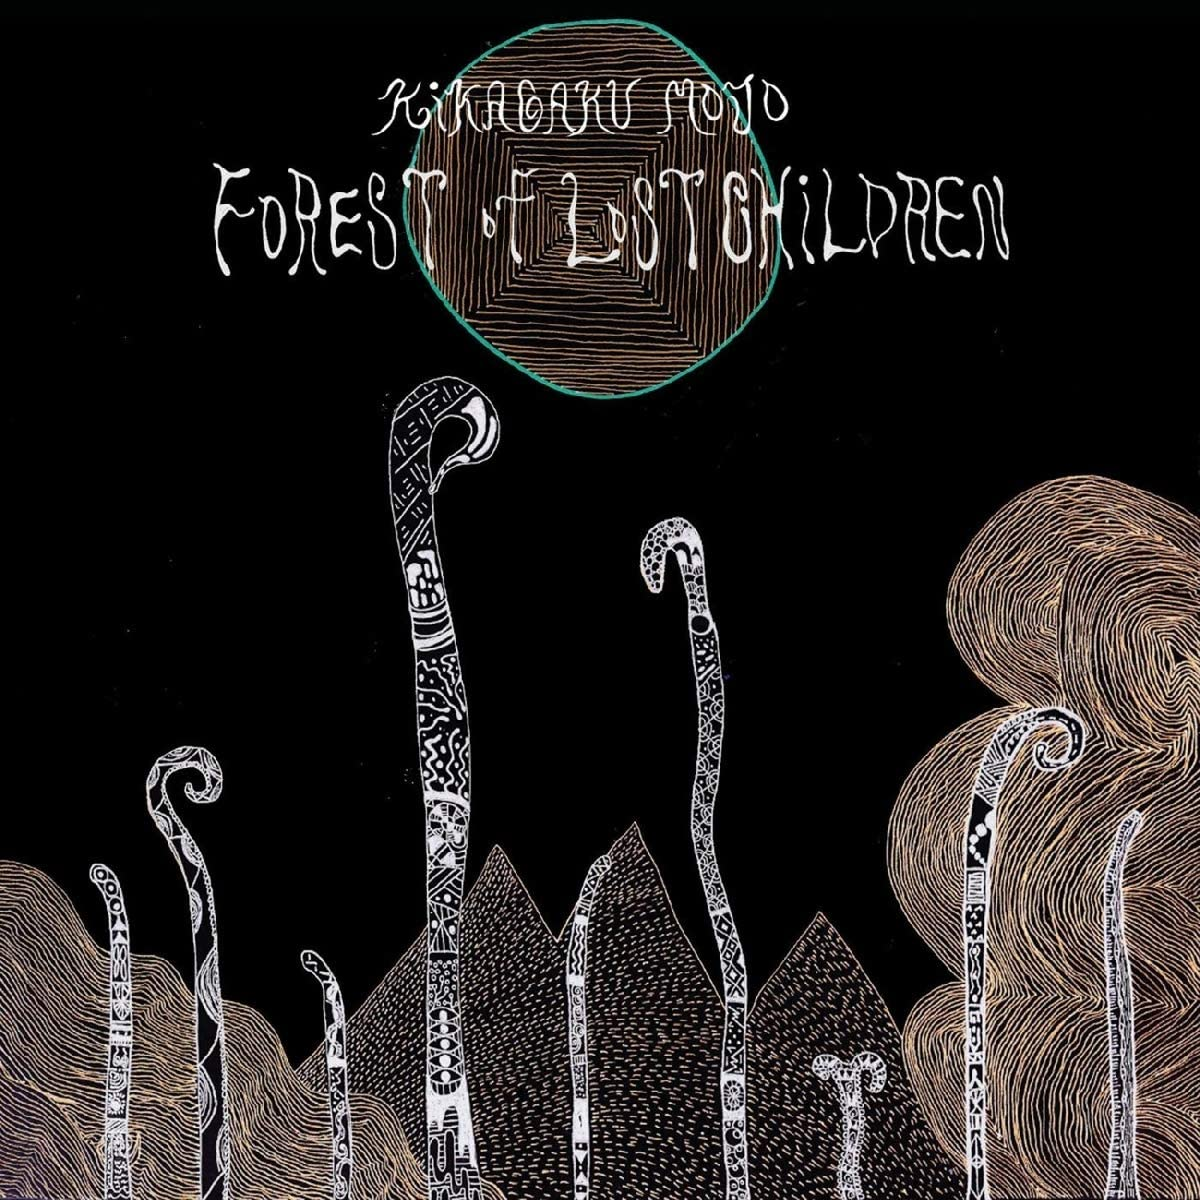 Copertina Vinile 33 giri Forest of Lost Children di Kikagaku Moyo